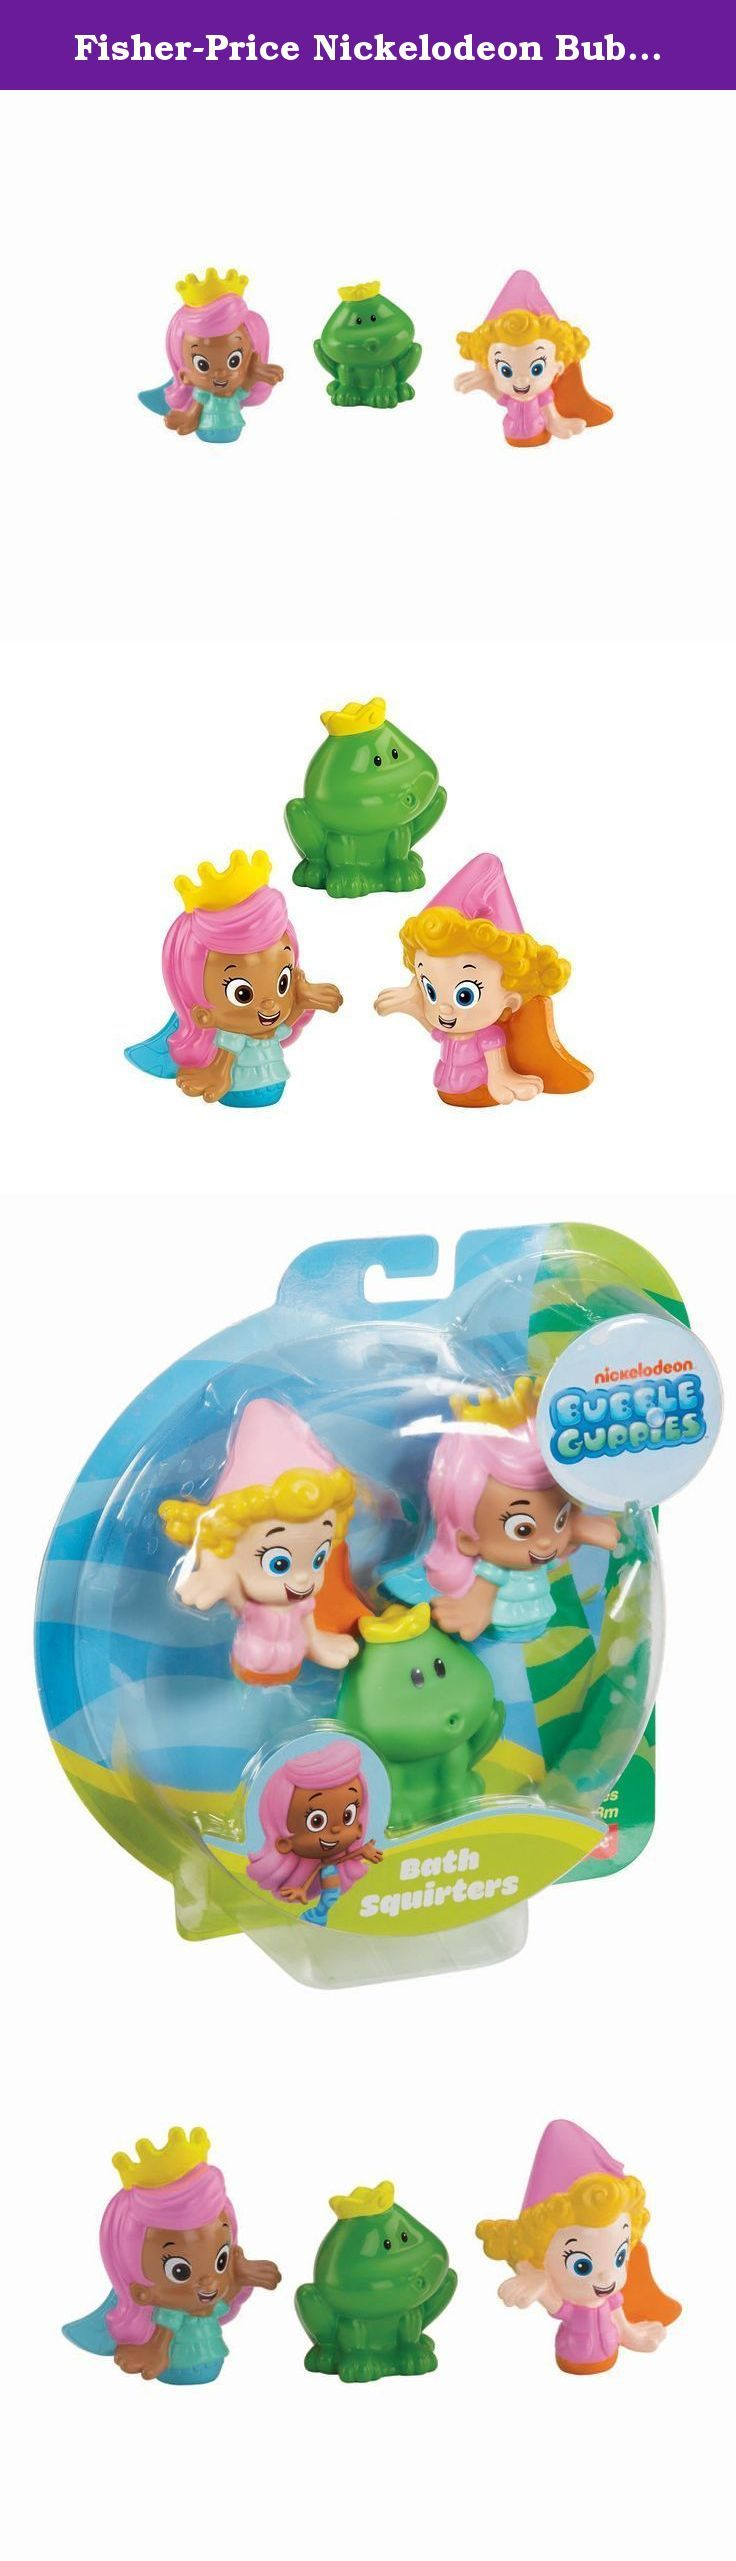 Fisher-Price Nickelodeon Bubble Guppies Molly, Deema and Frog Bath ...